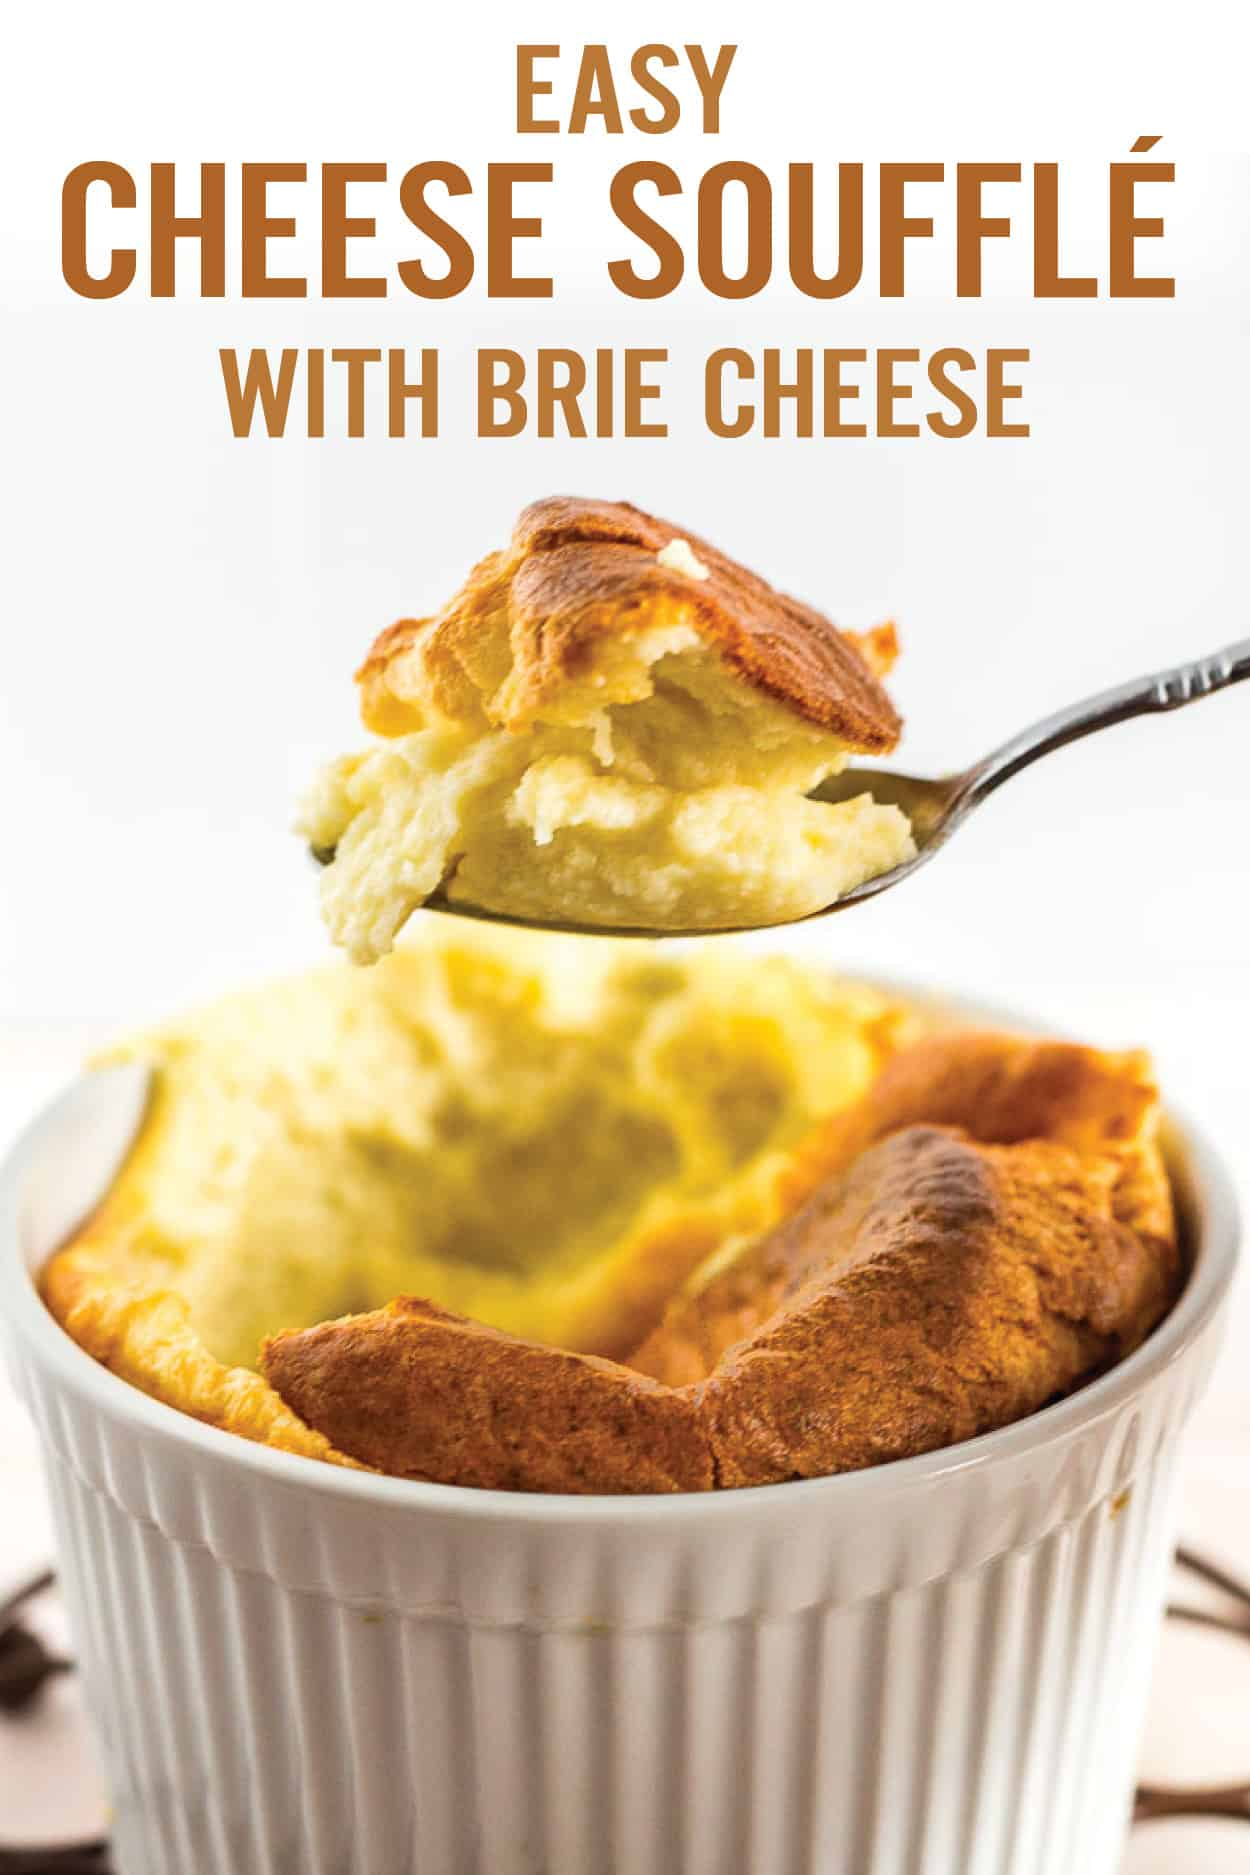 Learn everything you need to know to make fluffy, airy and easy Cheese Souffle with Brie Cheese. Try it as a fancy side your family meal or serve during the holidays as a unique addition to your entertaining menu. Made with butter, flour, milk, egg and Brie cheese, then baked until puffed and golden. #cheesesouffle #easysouffle #souffle